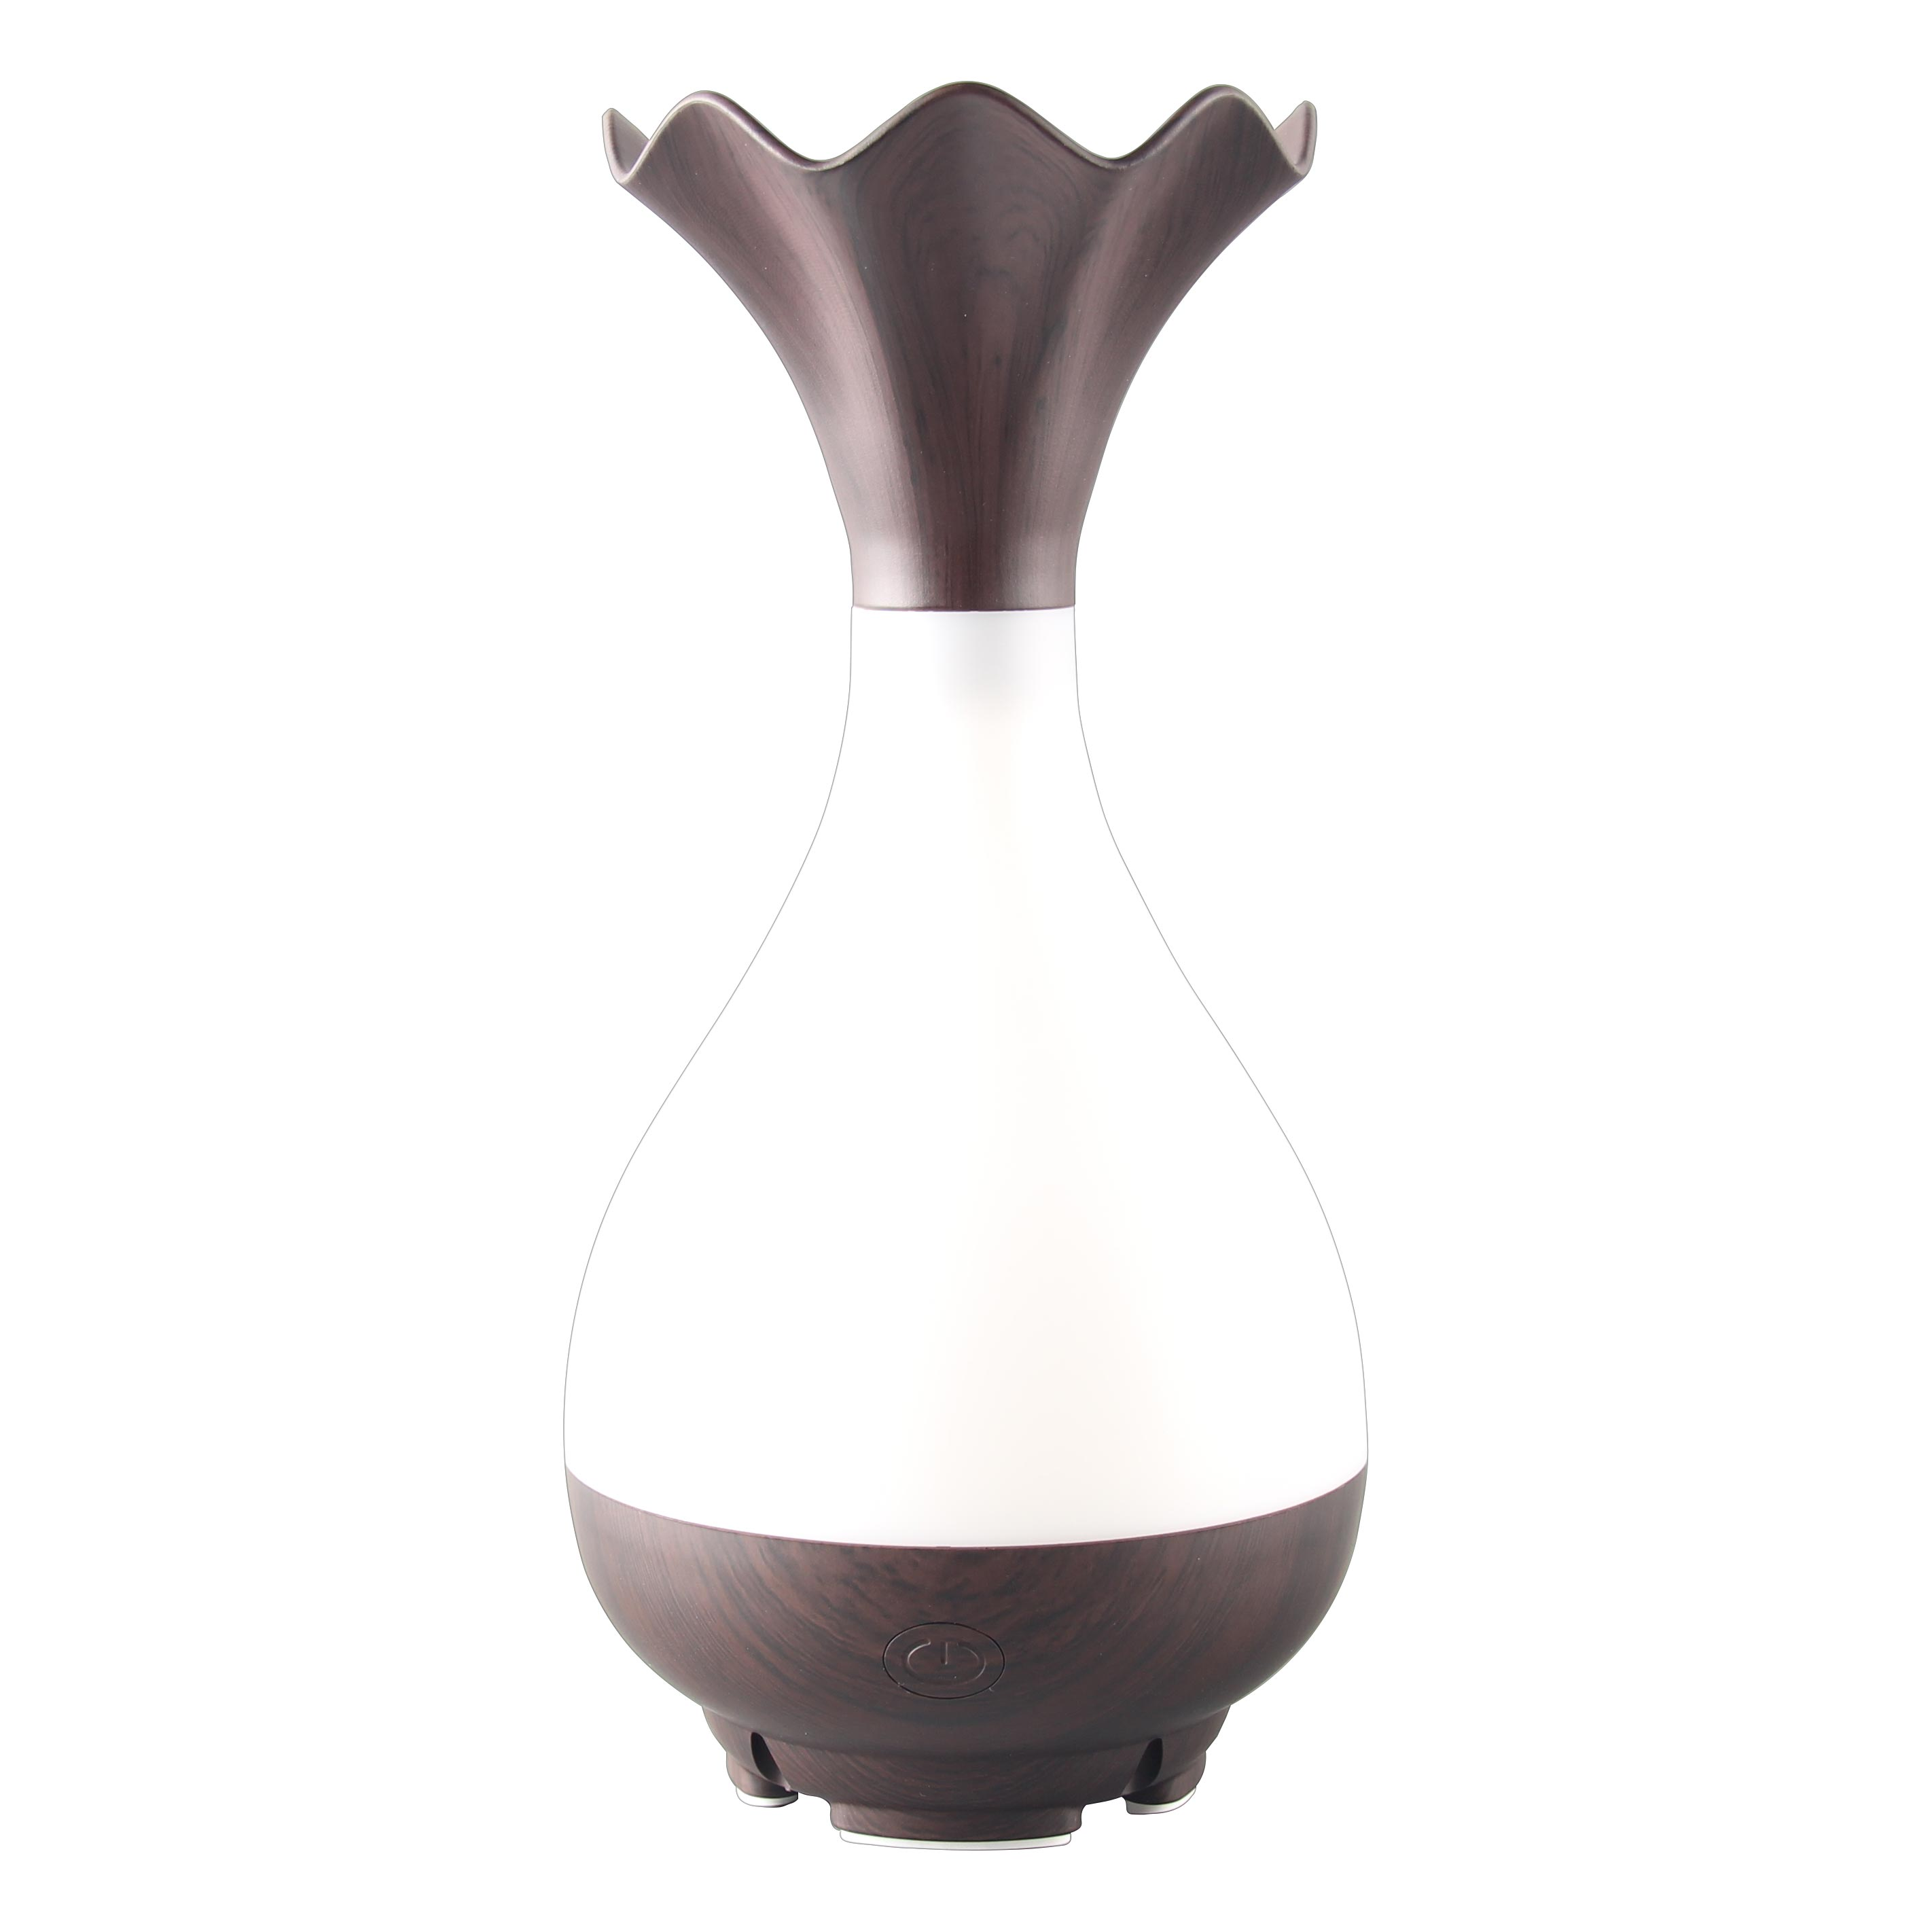 Vase Shape Woodgrain Oil Diffuser-H1122B title=